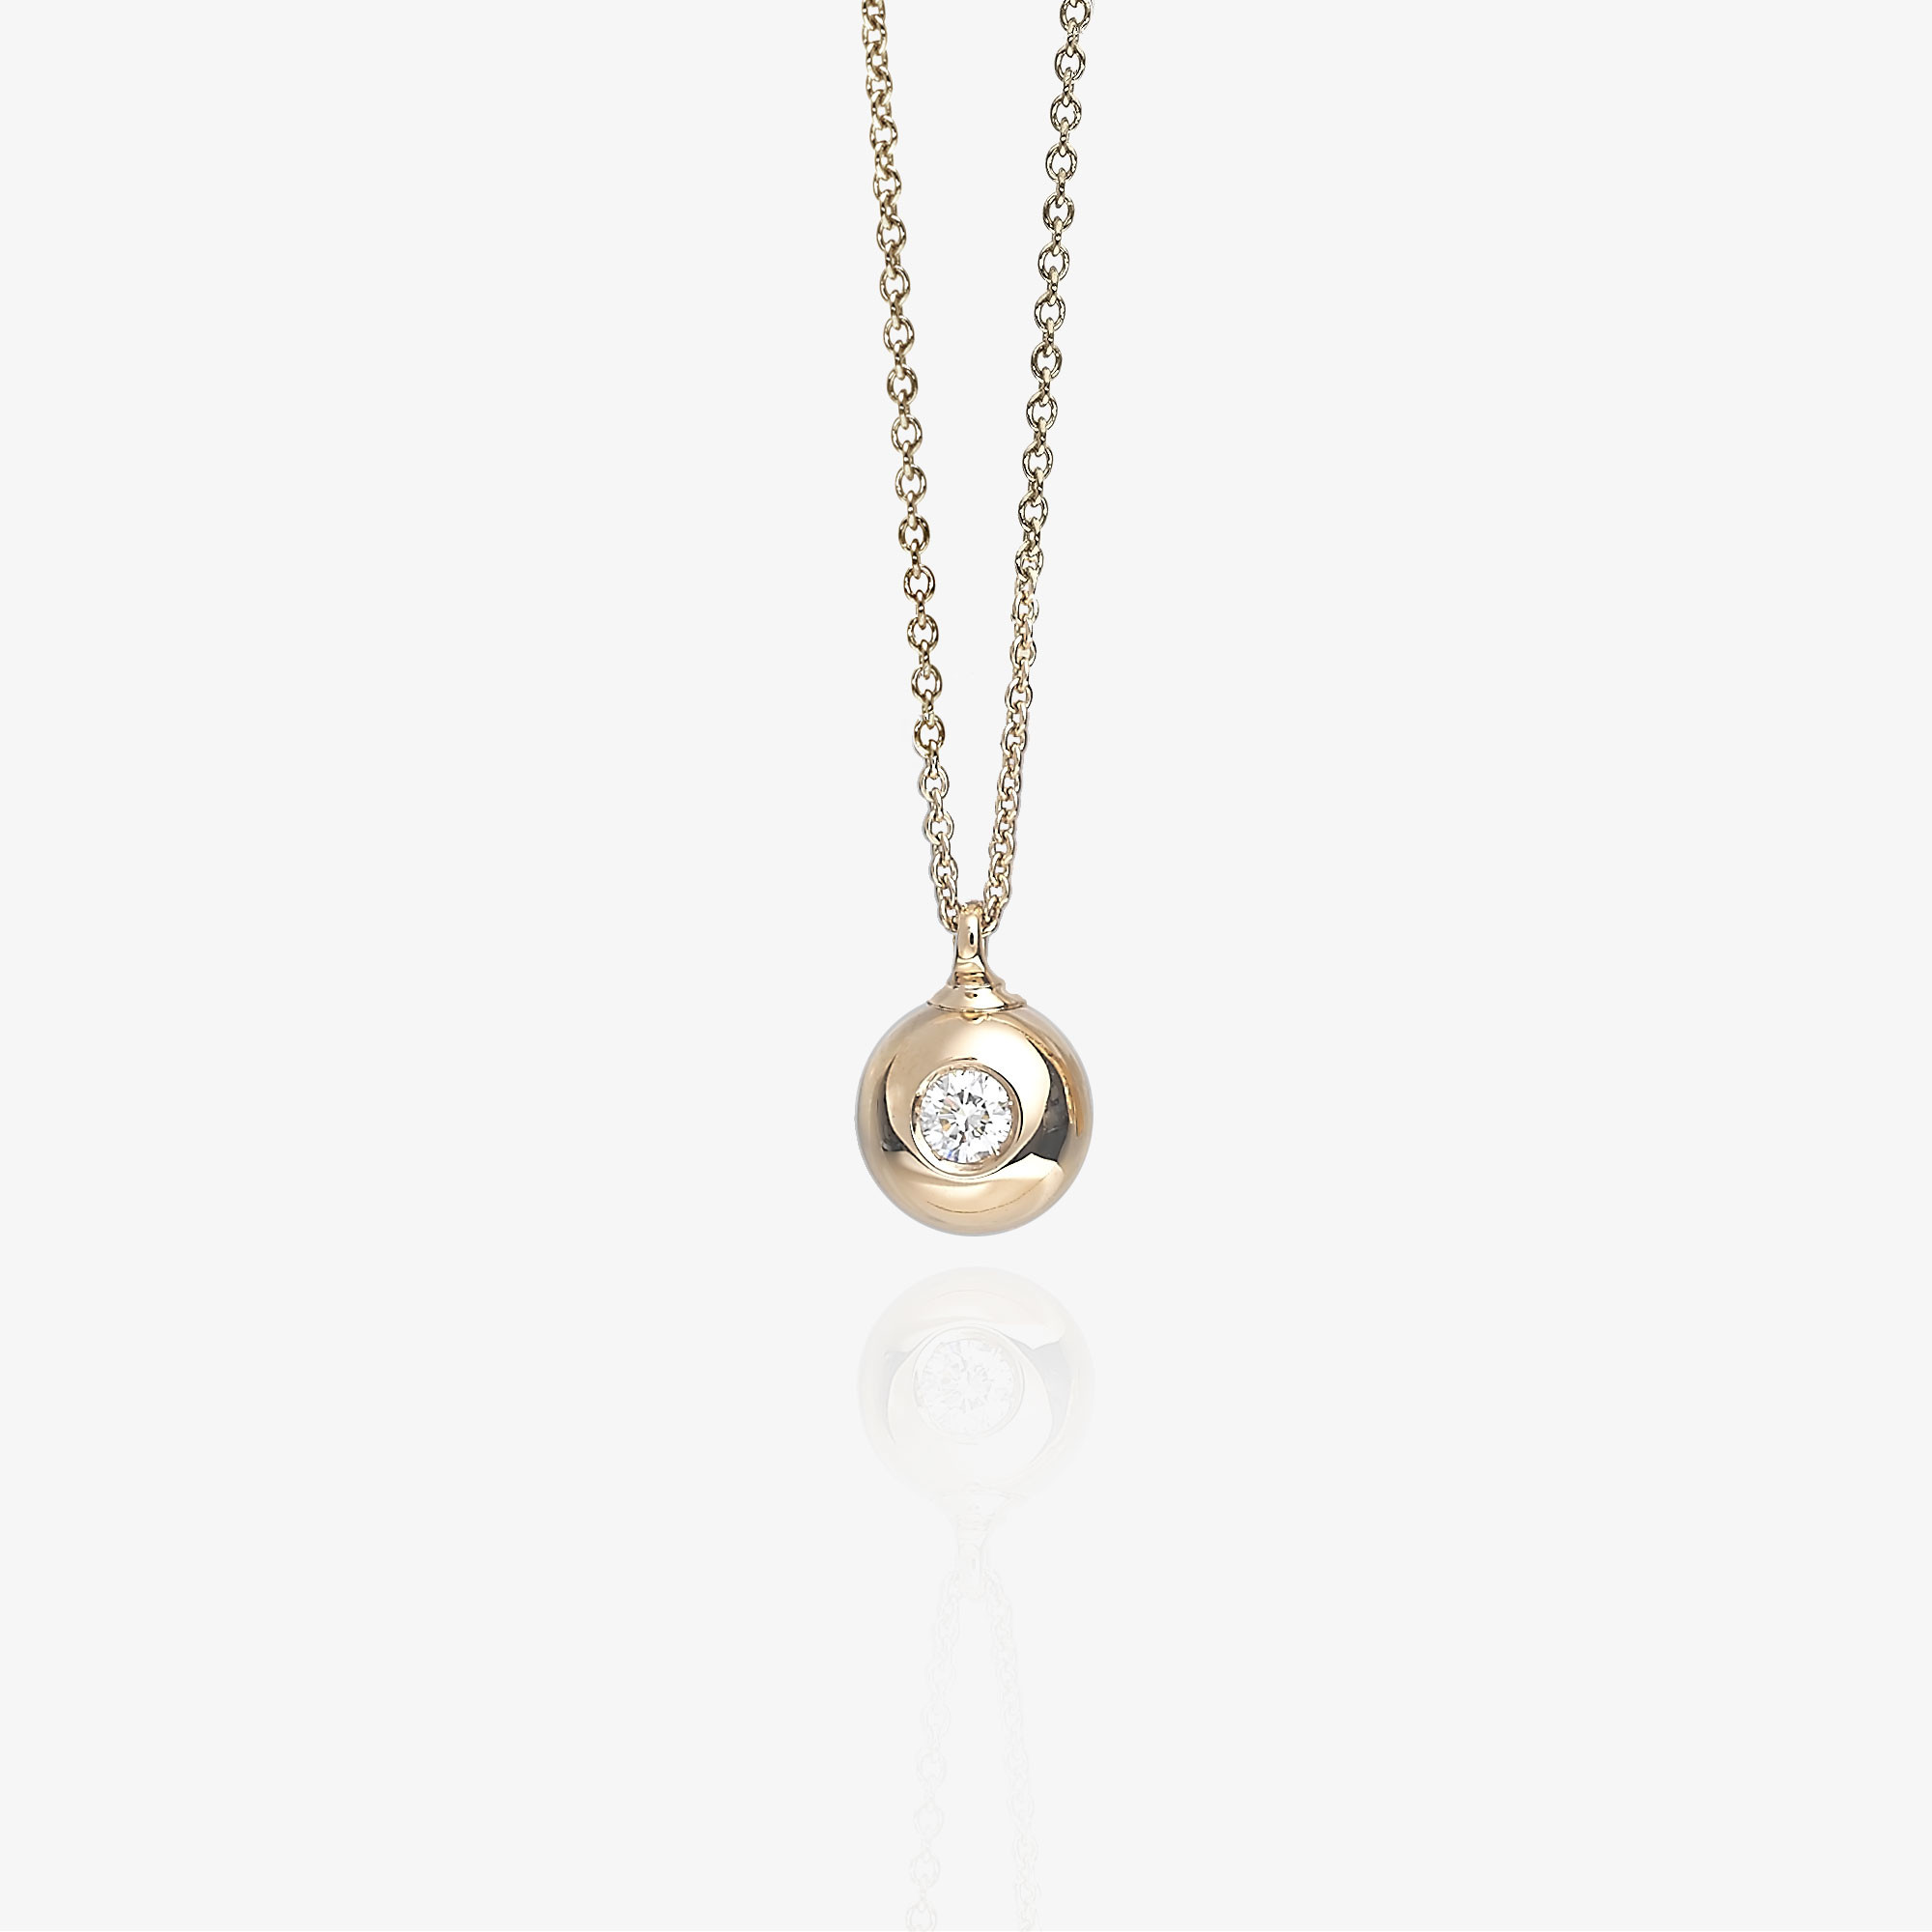 Sphere necklace